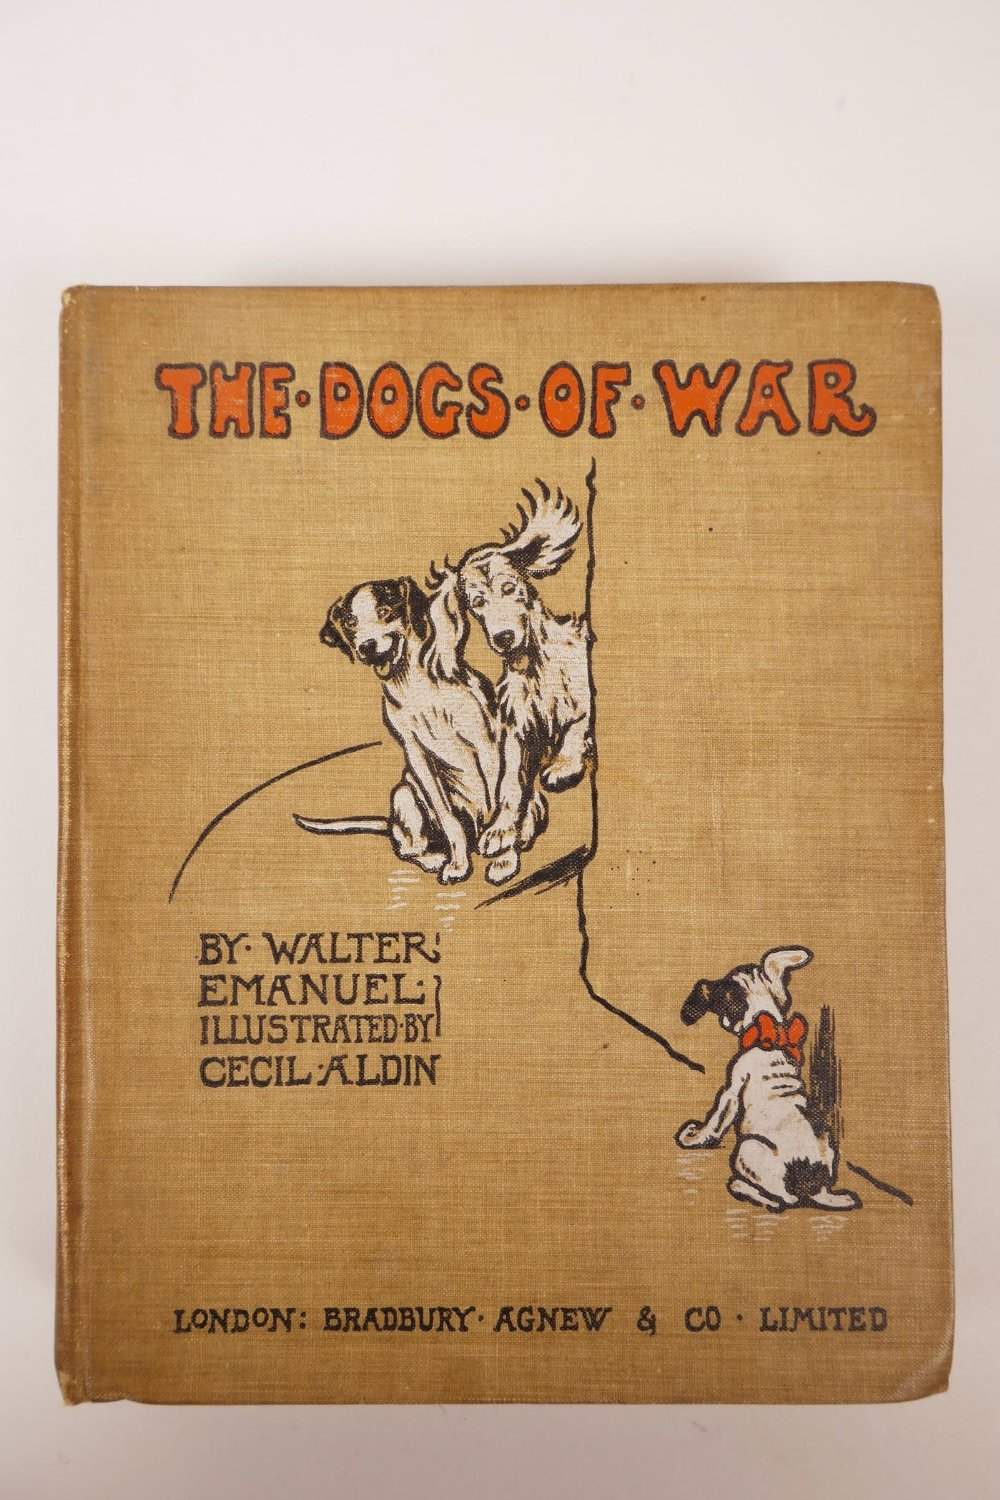 Lot 20 - Walter Emanuel (1869-1915), 'The Dogs of War', illustrated by Cecil Aldin, first edition, (London: